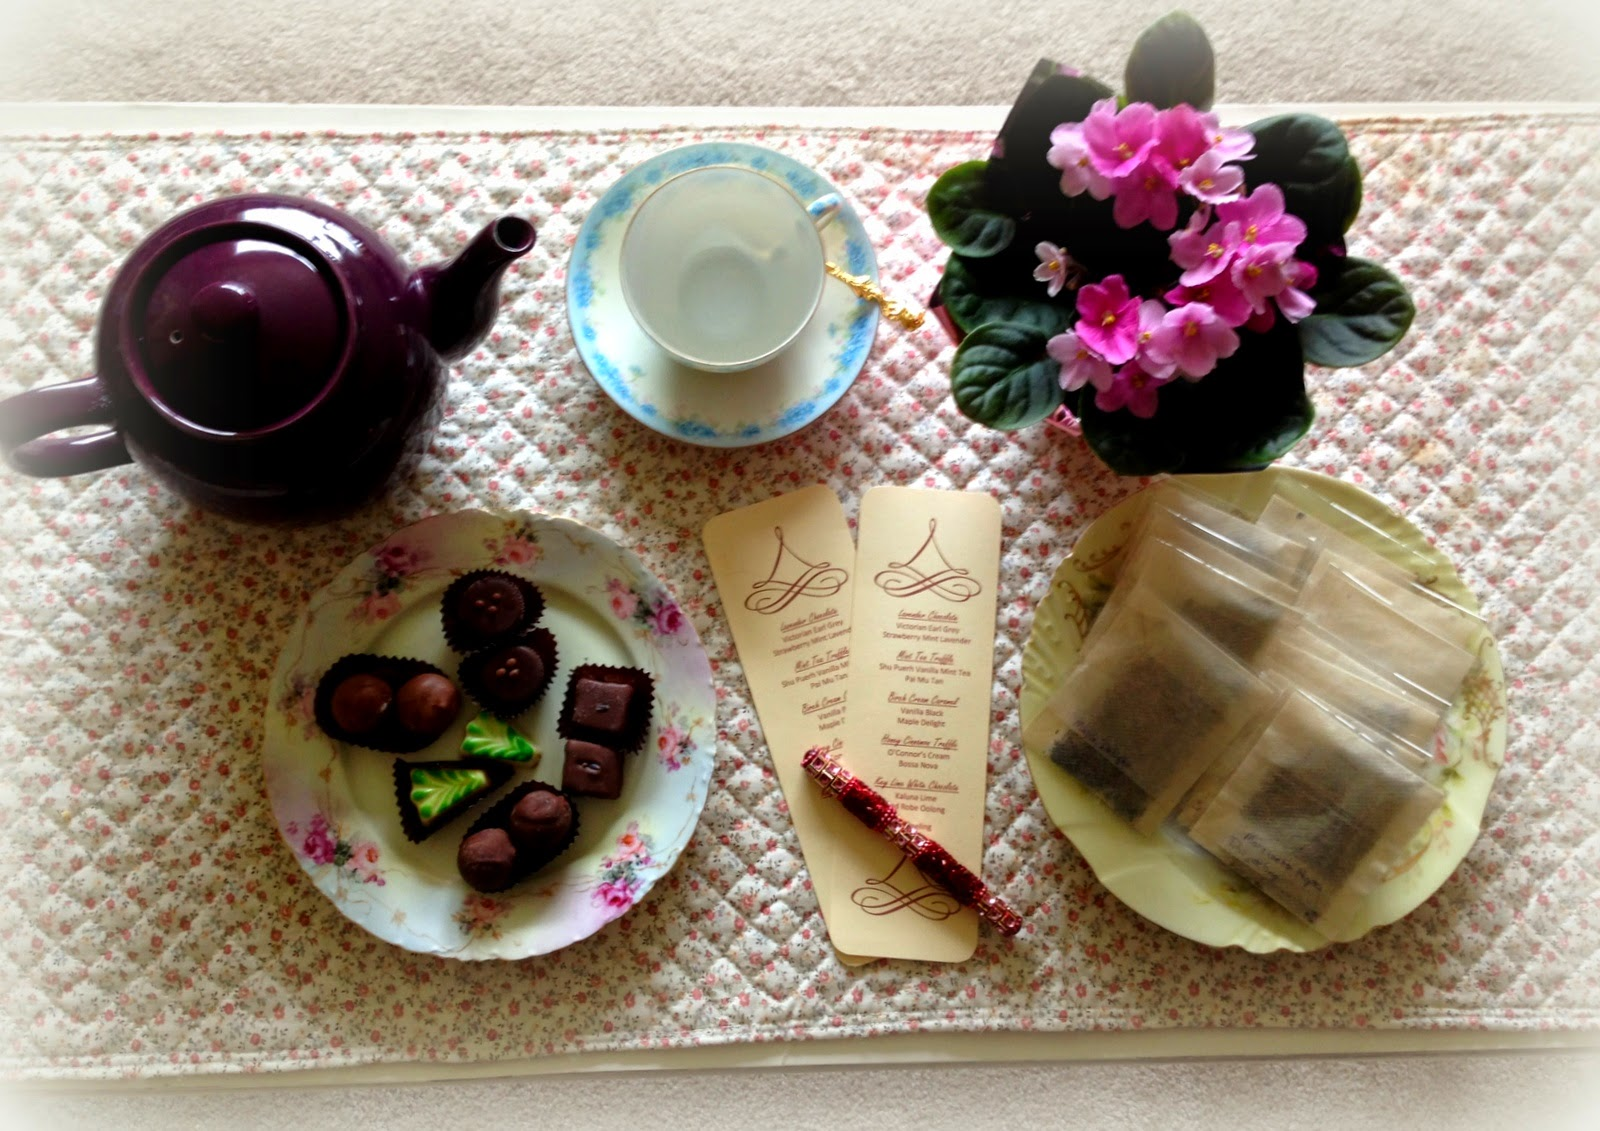 Chocolate & Tea